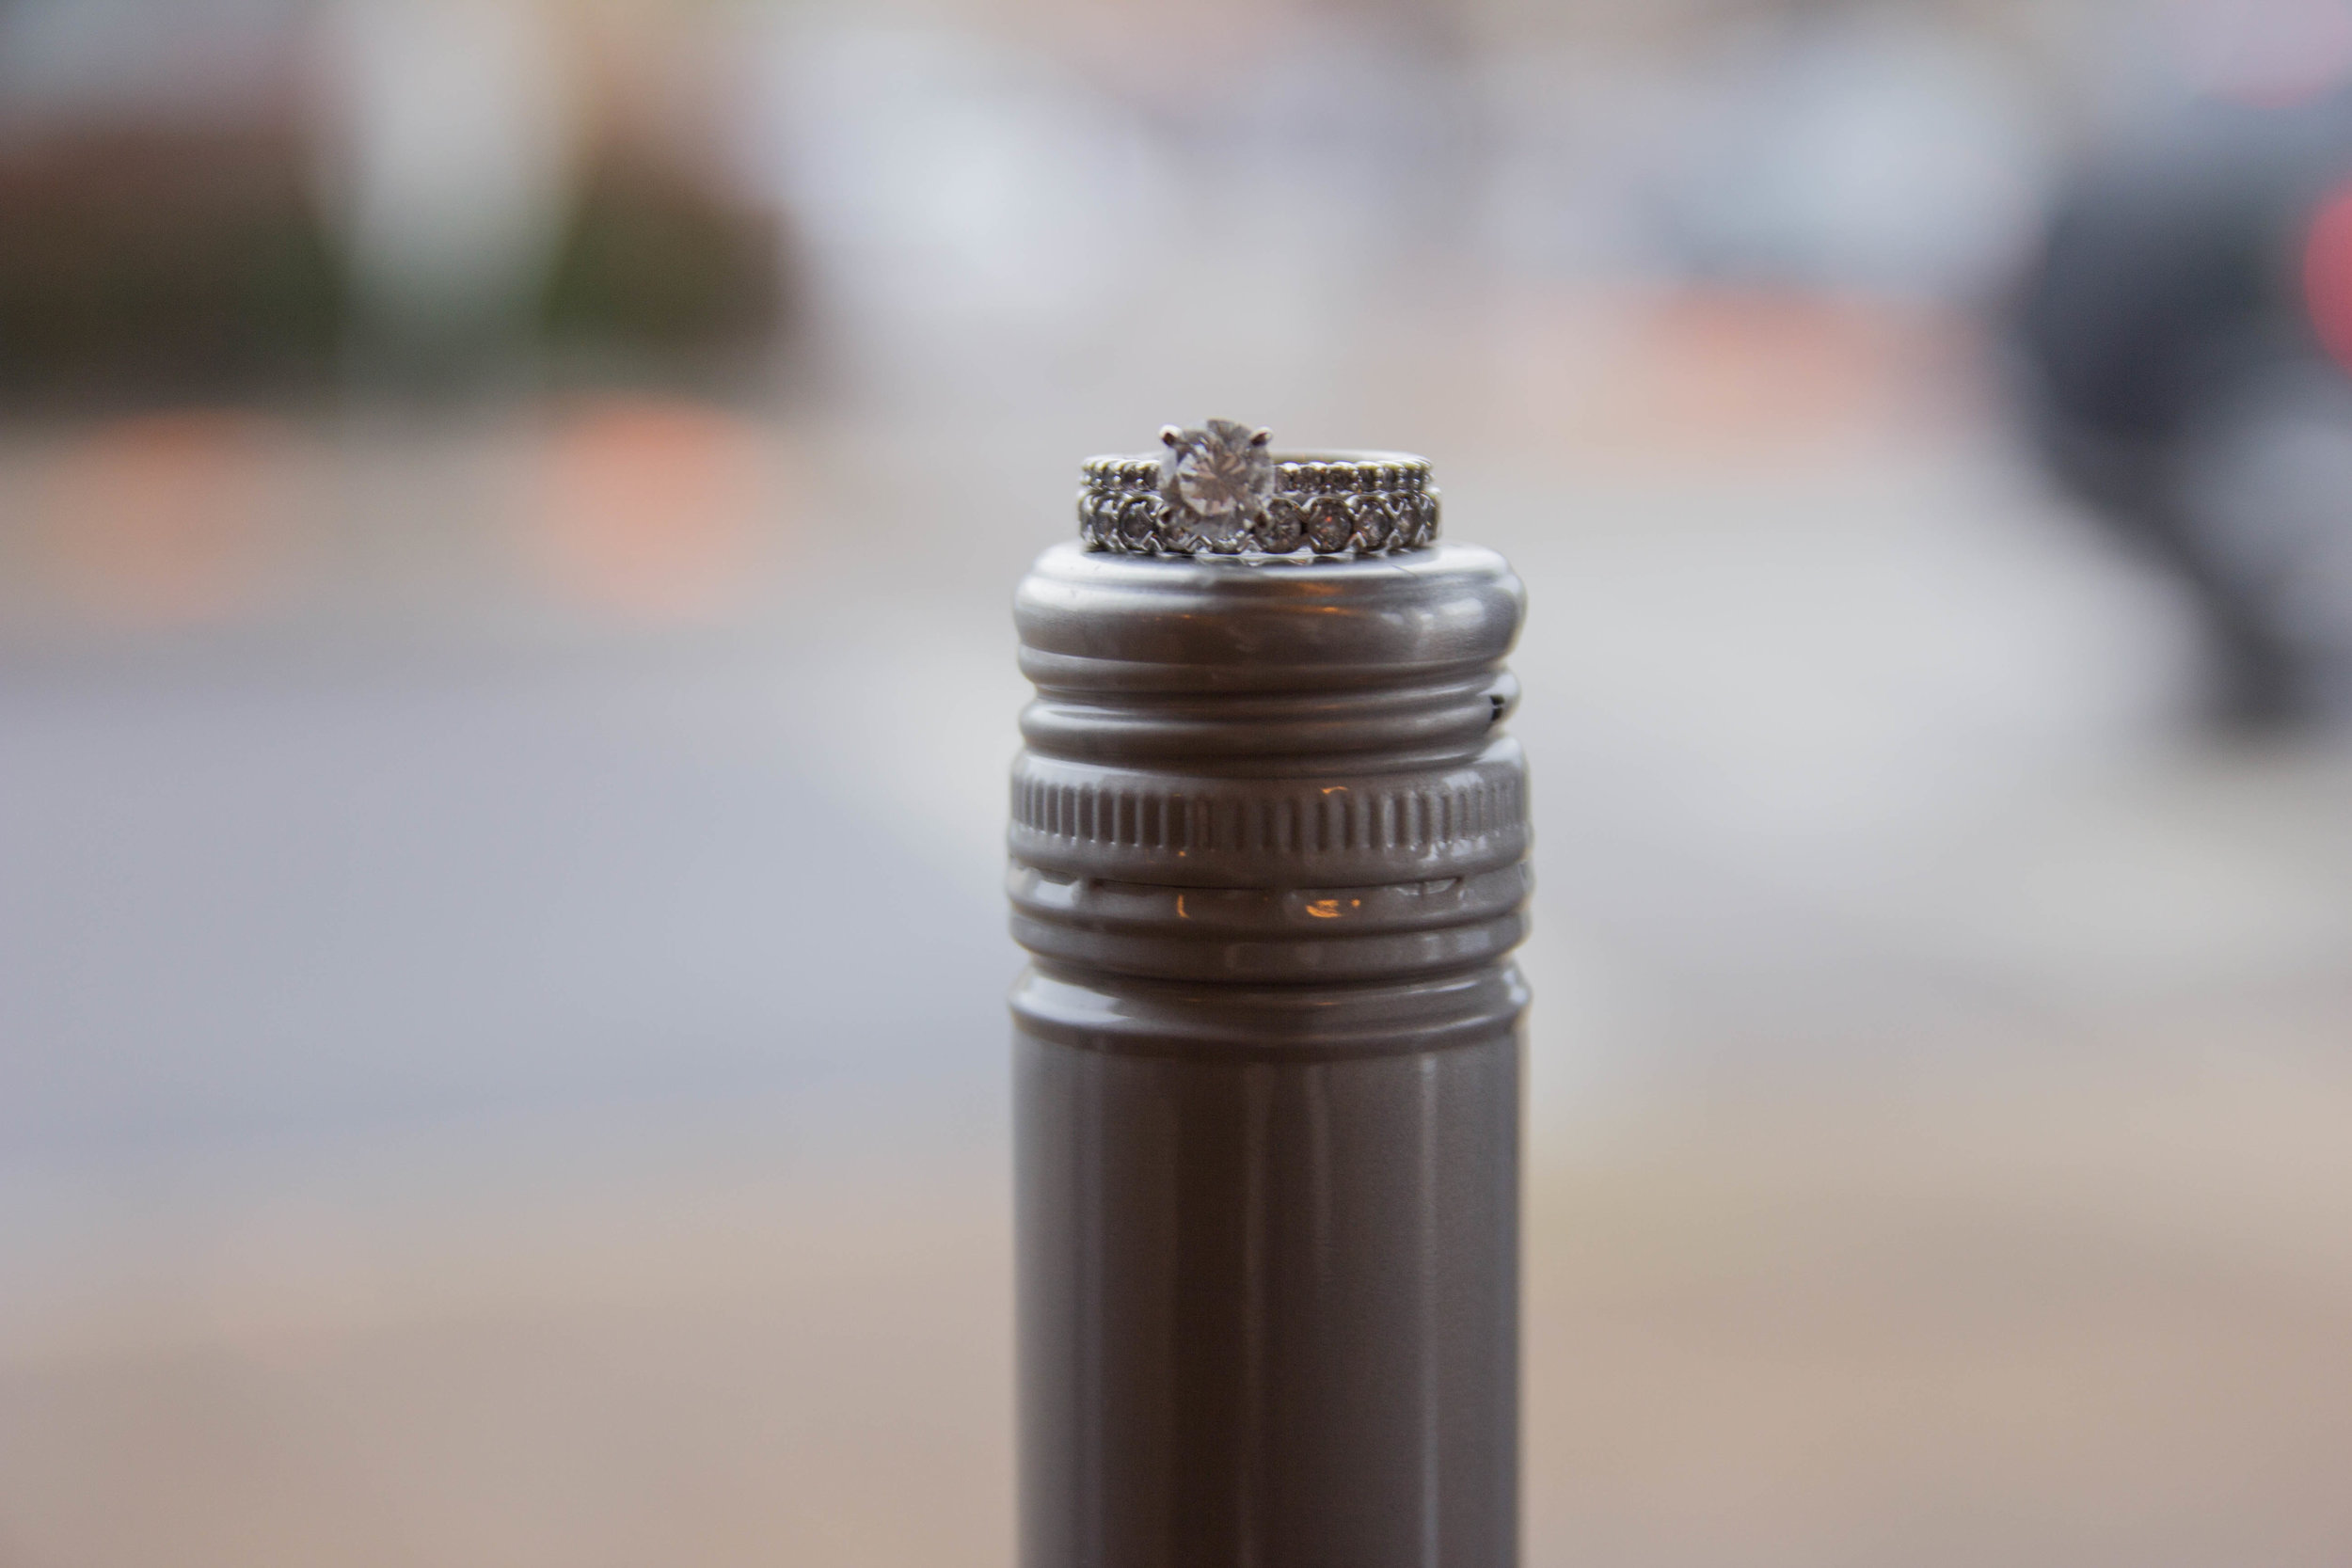 jewelers mutual, fuller's jewelry, where to get your engagement ring in dallas, where to get your wedding rings in dallas, wine poste, bar anatomie, neighborhood cellar, bishop arts district, rose all day, how to keep your engagement ring shiny even after the wedding